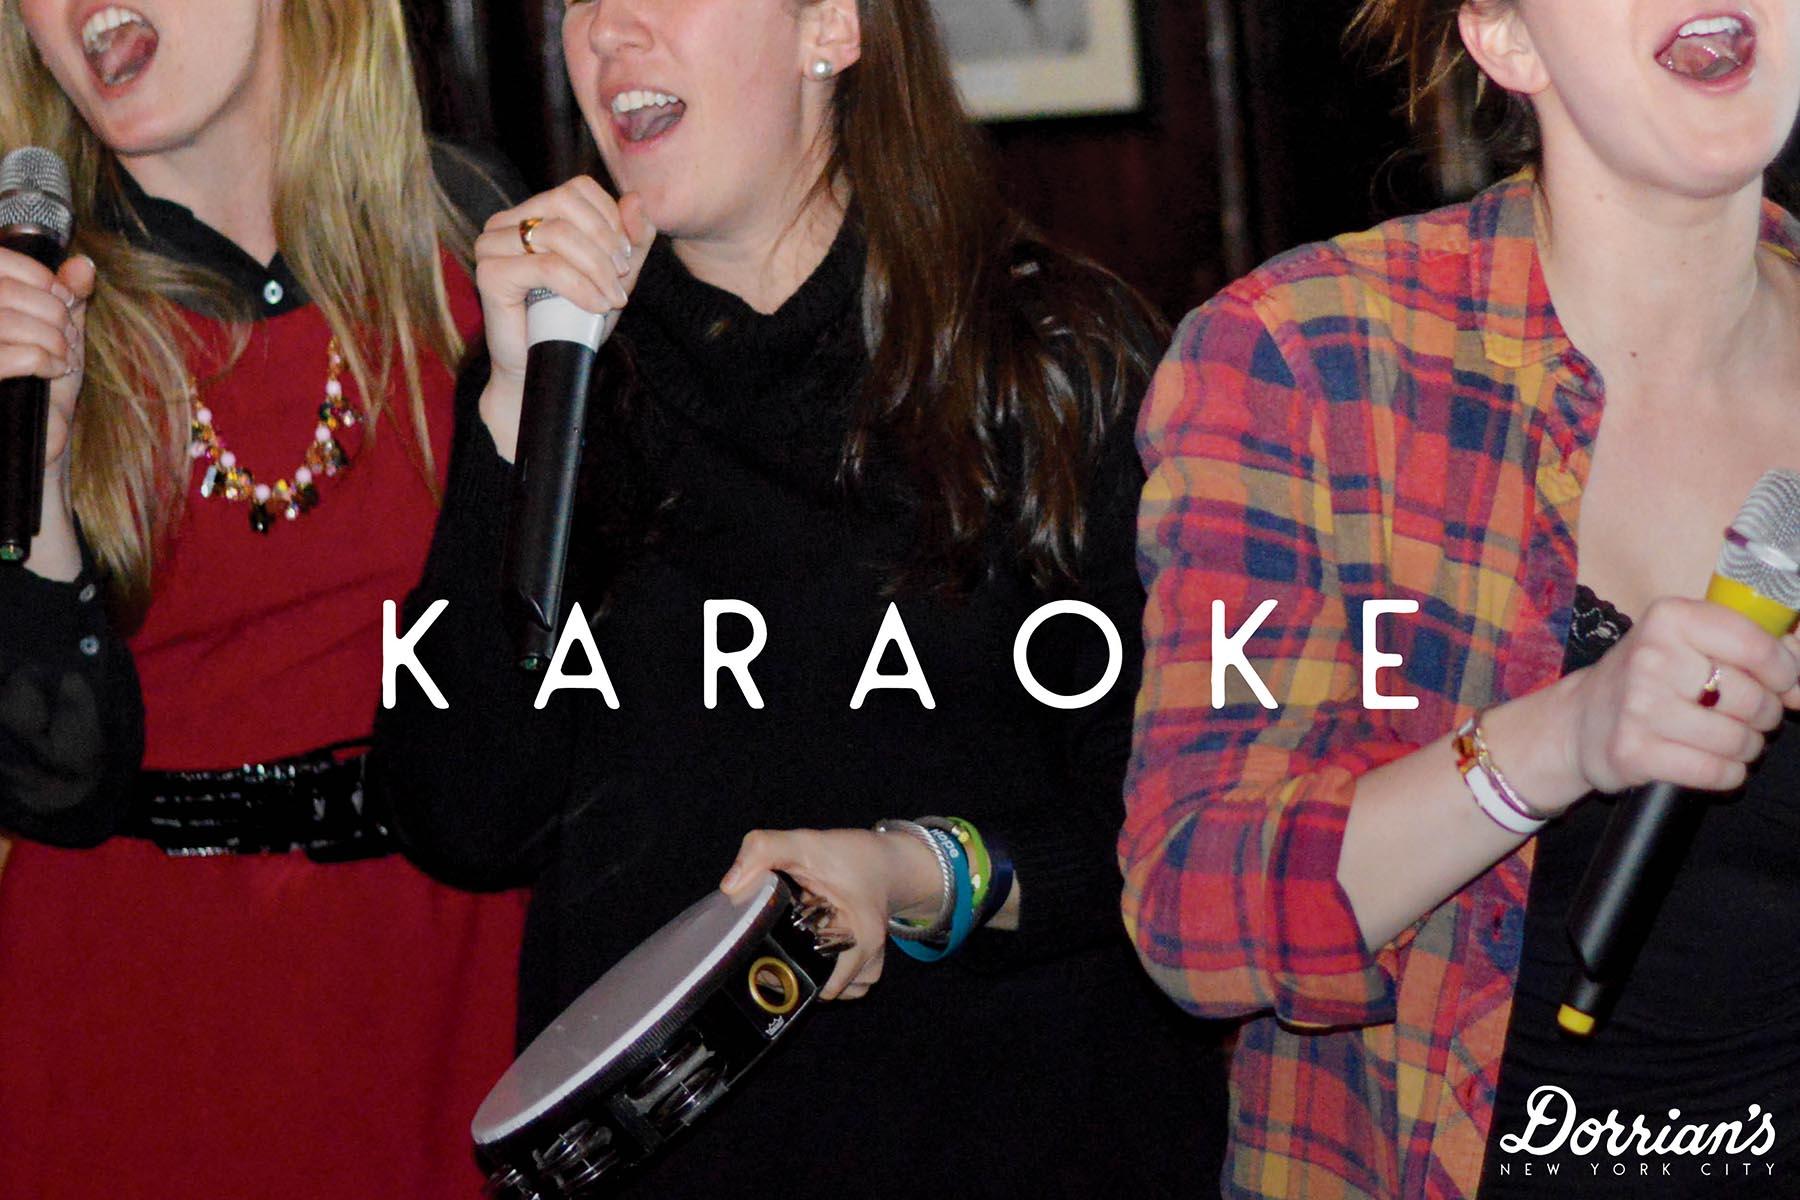 drh_nyc-2019-insta-events-karaoke-four-girls-1200-hor.jpg